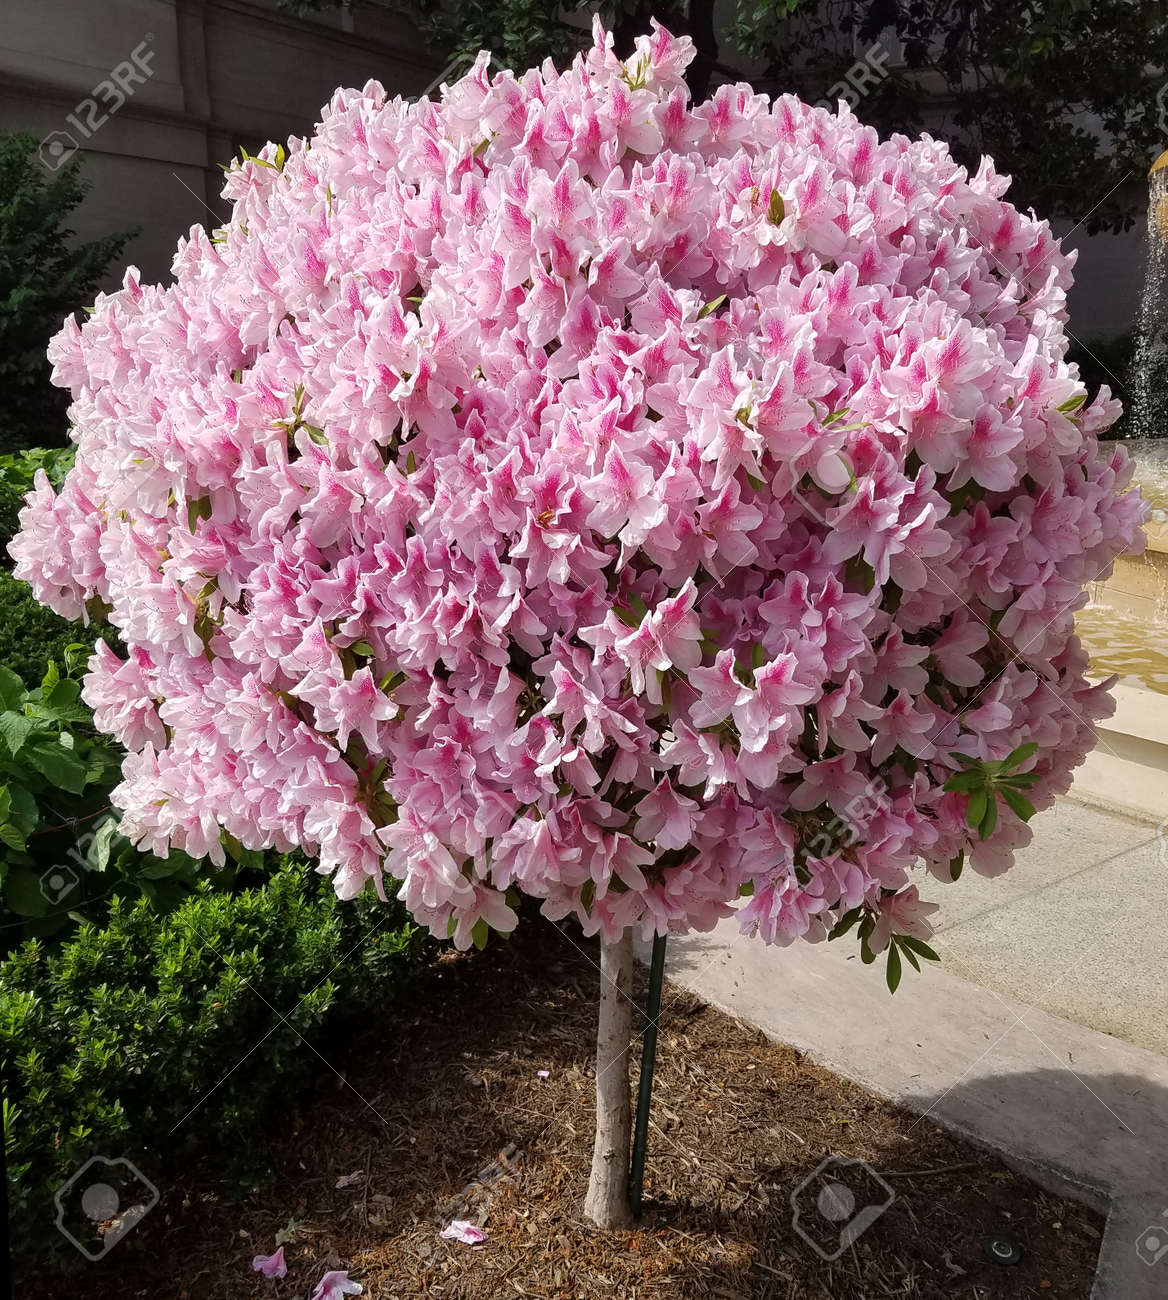 Ornamental Tree With Blooming Pink Lily Flowers For Spring